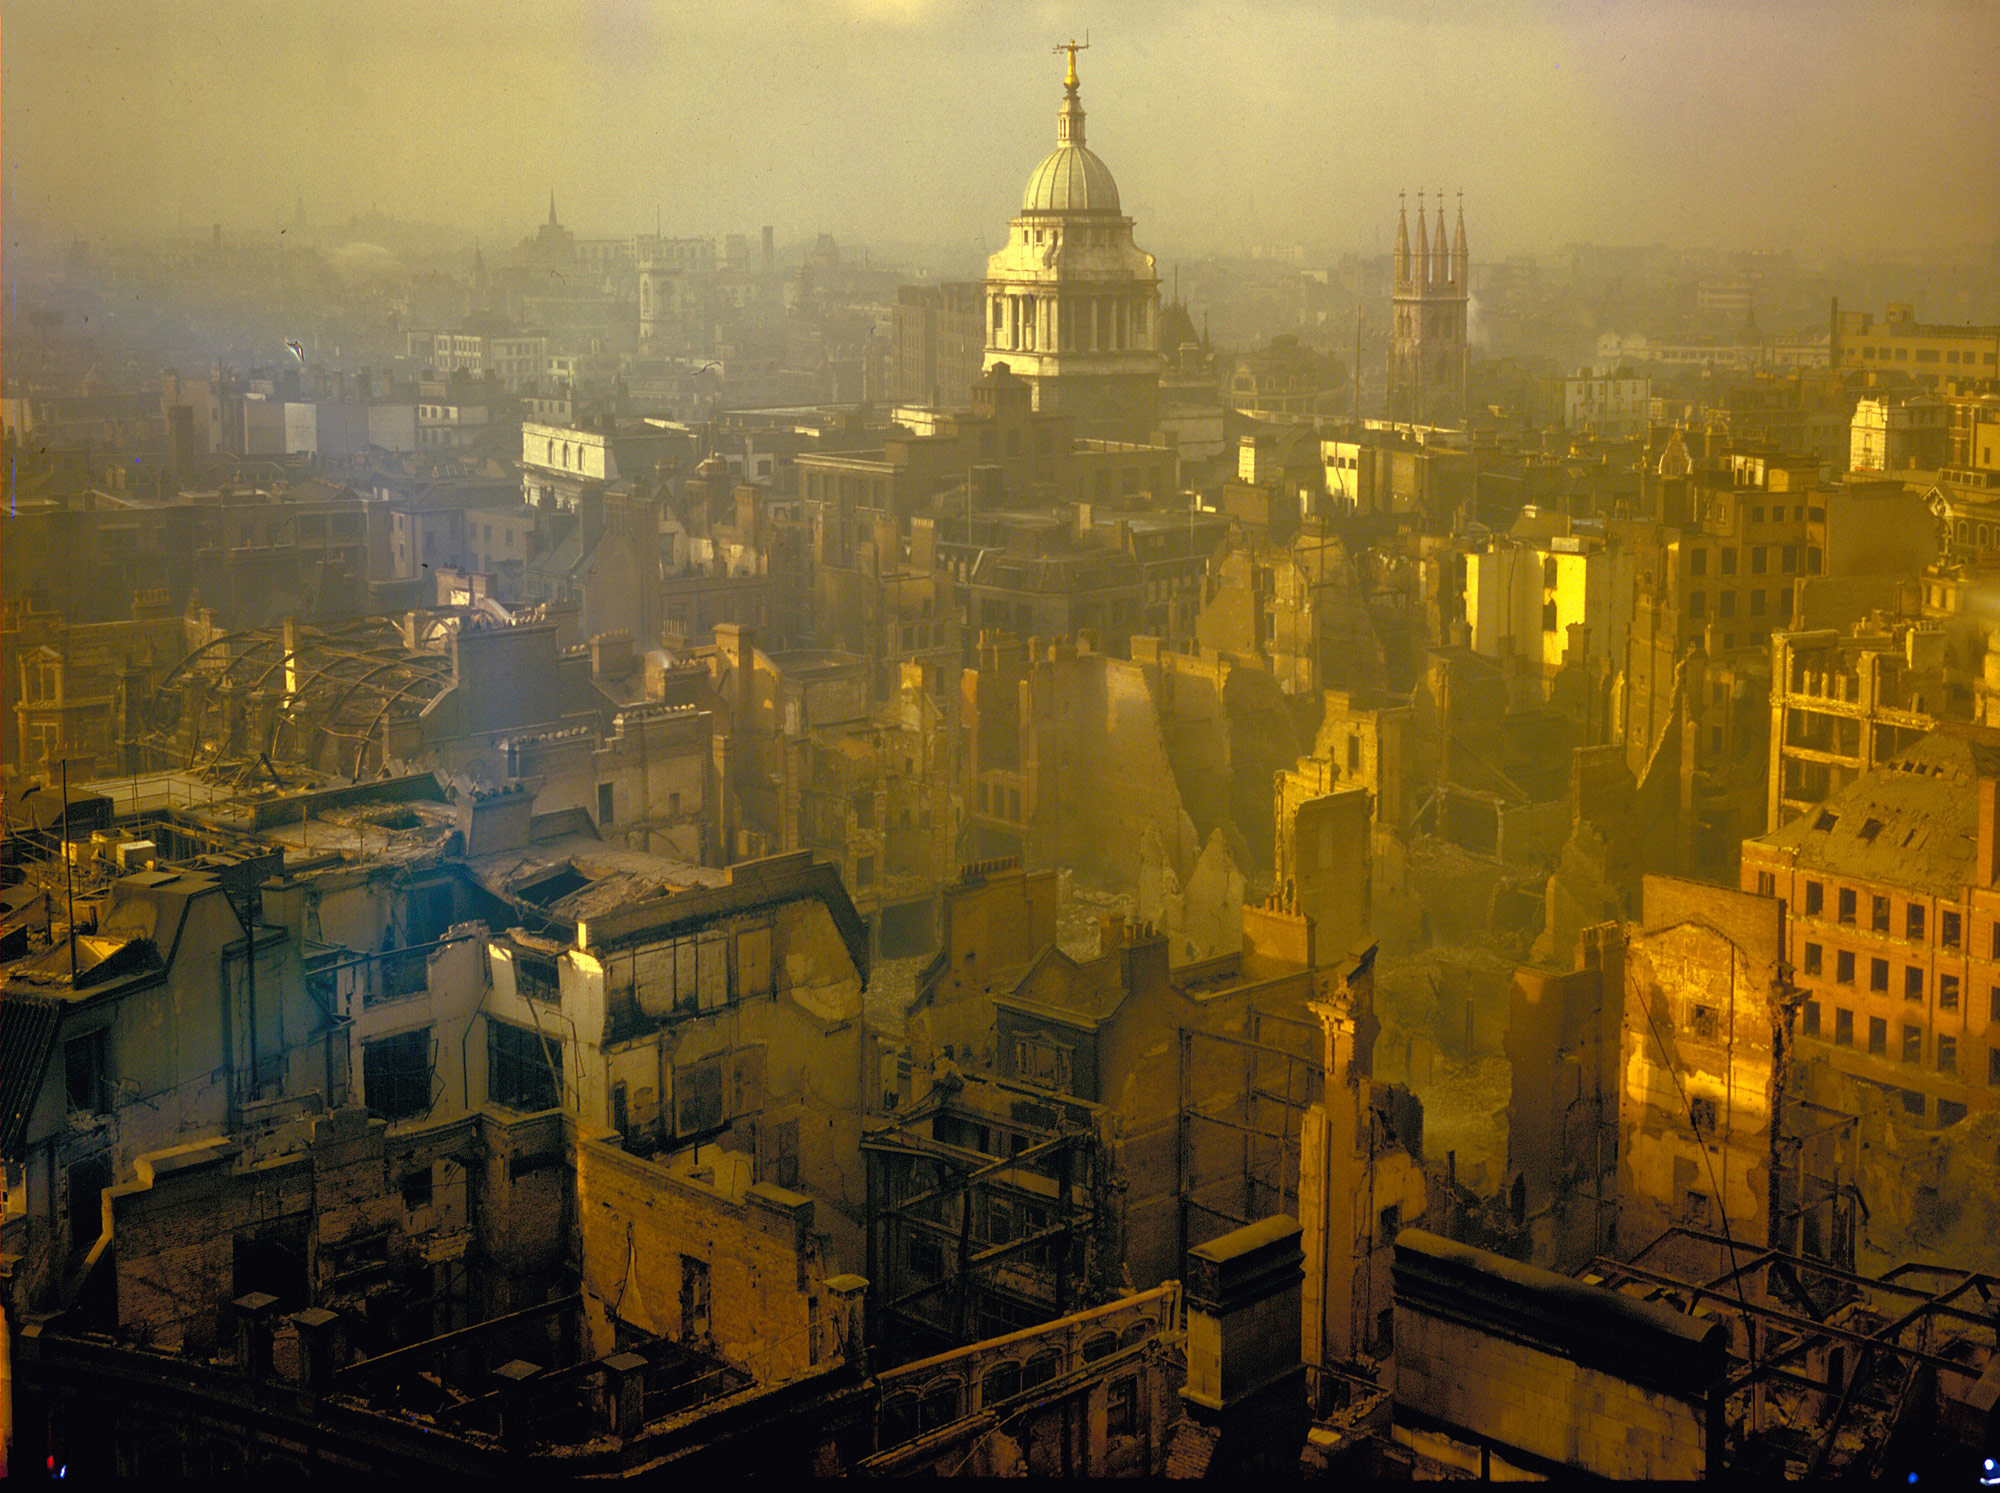 Photograph of the City of London after air raids during the Blitz, September 1940